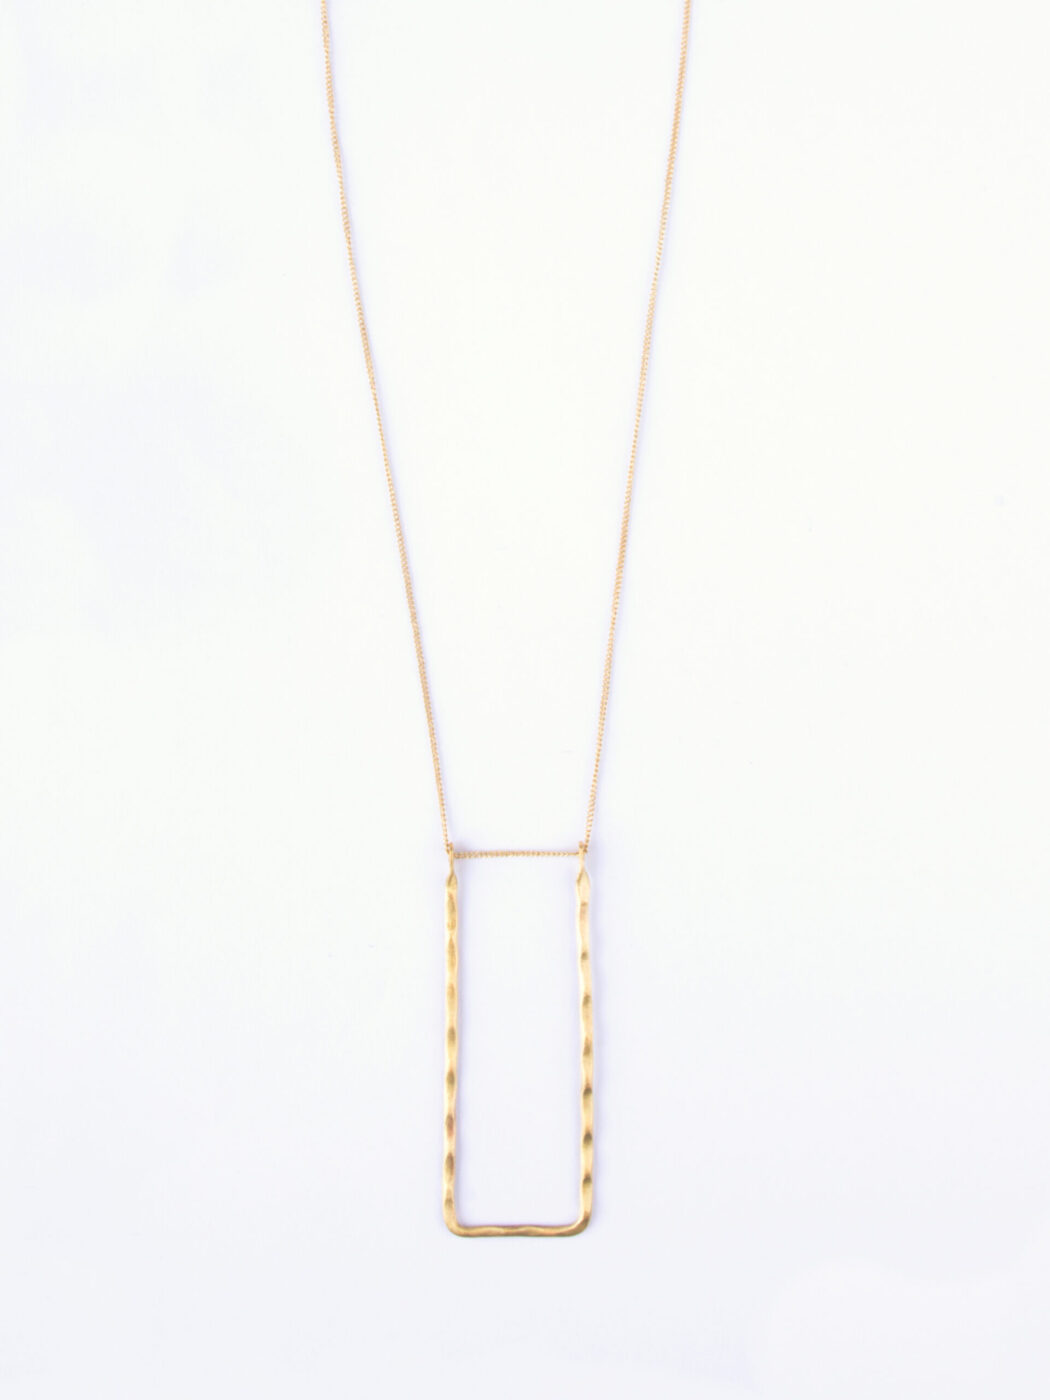 necklace_delicateframe_gold